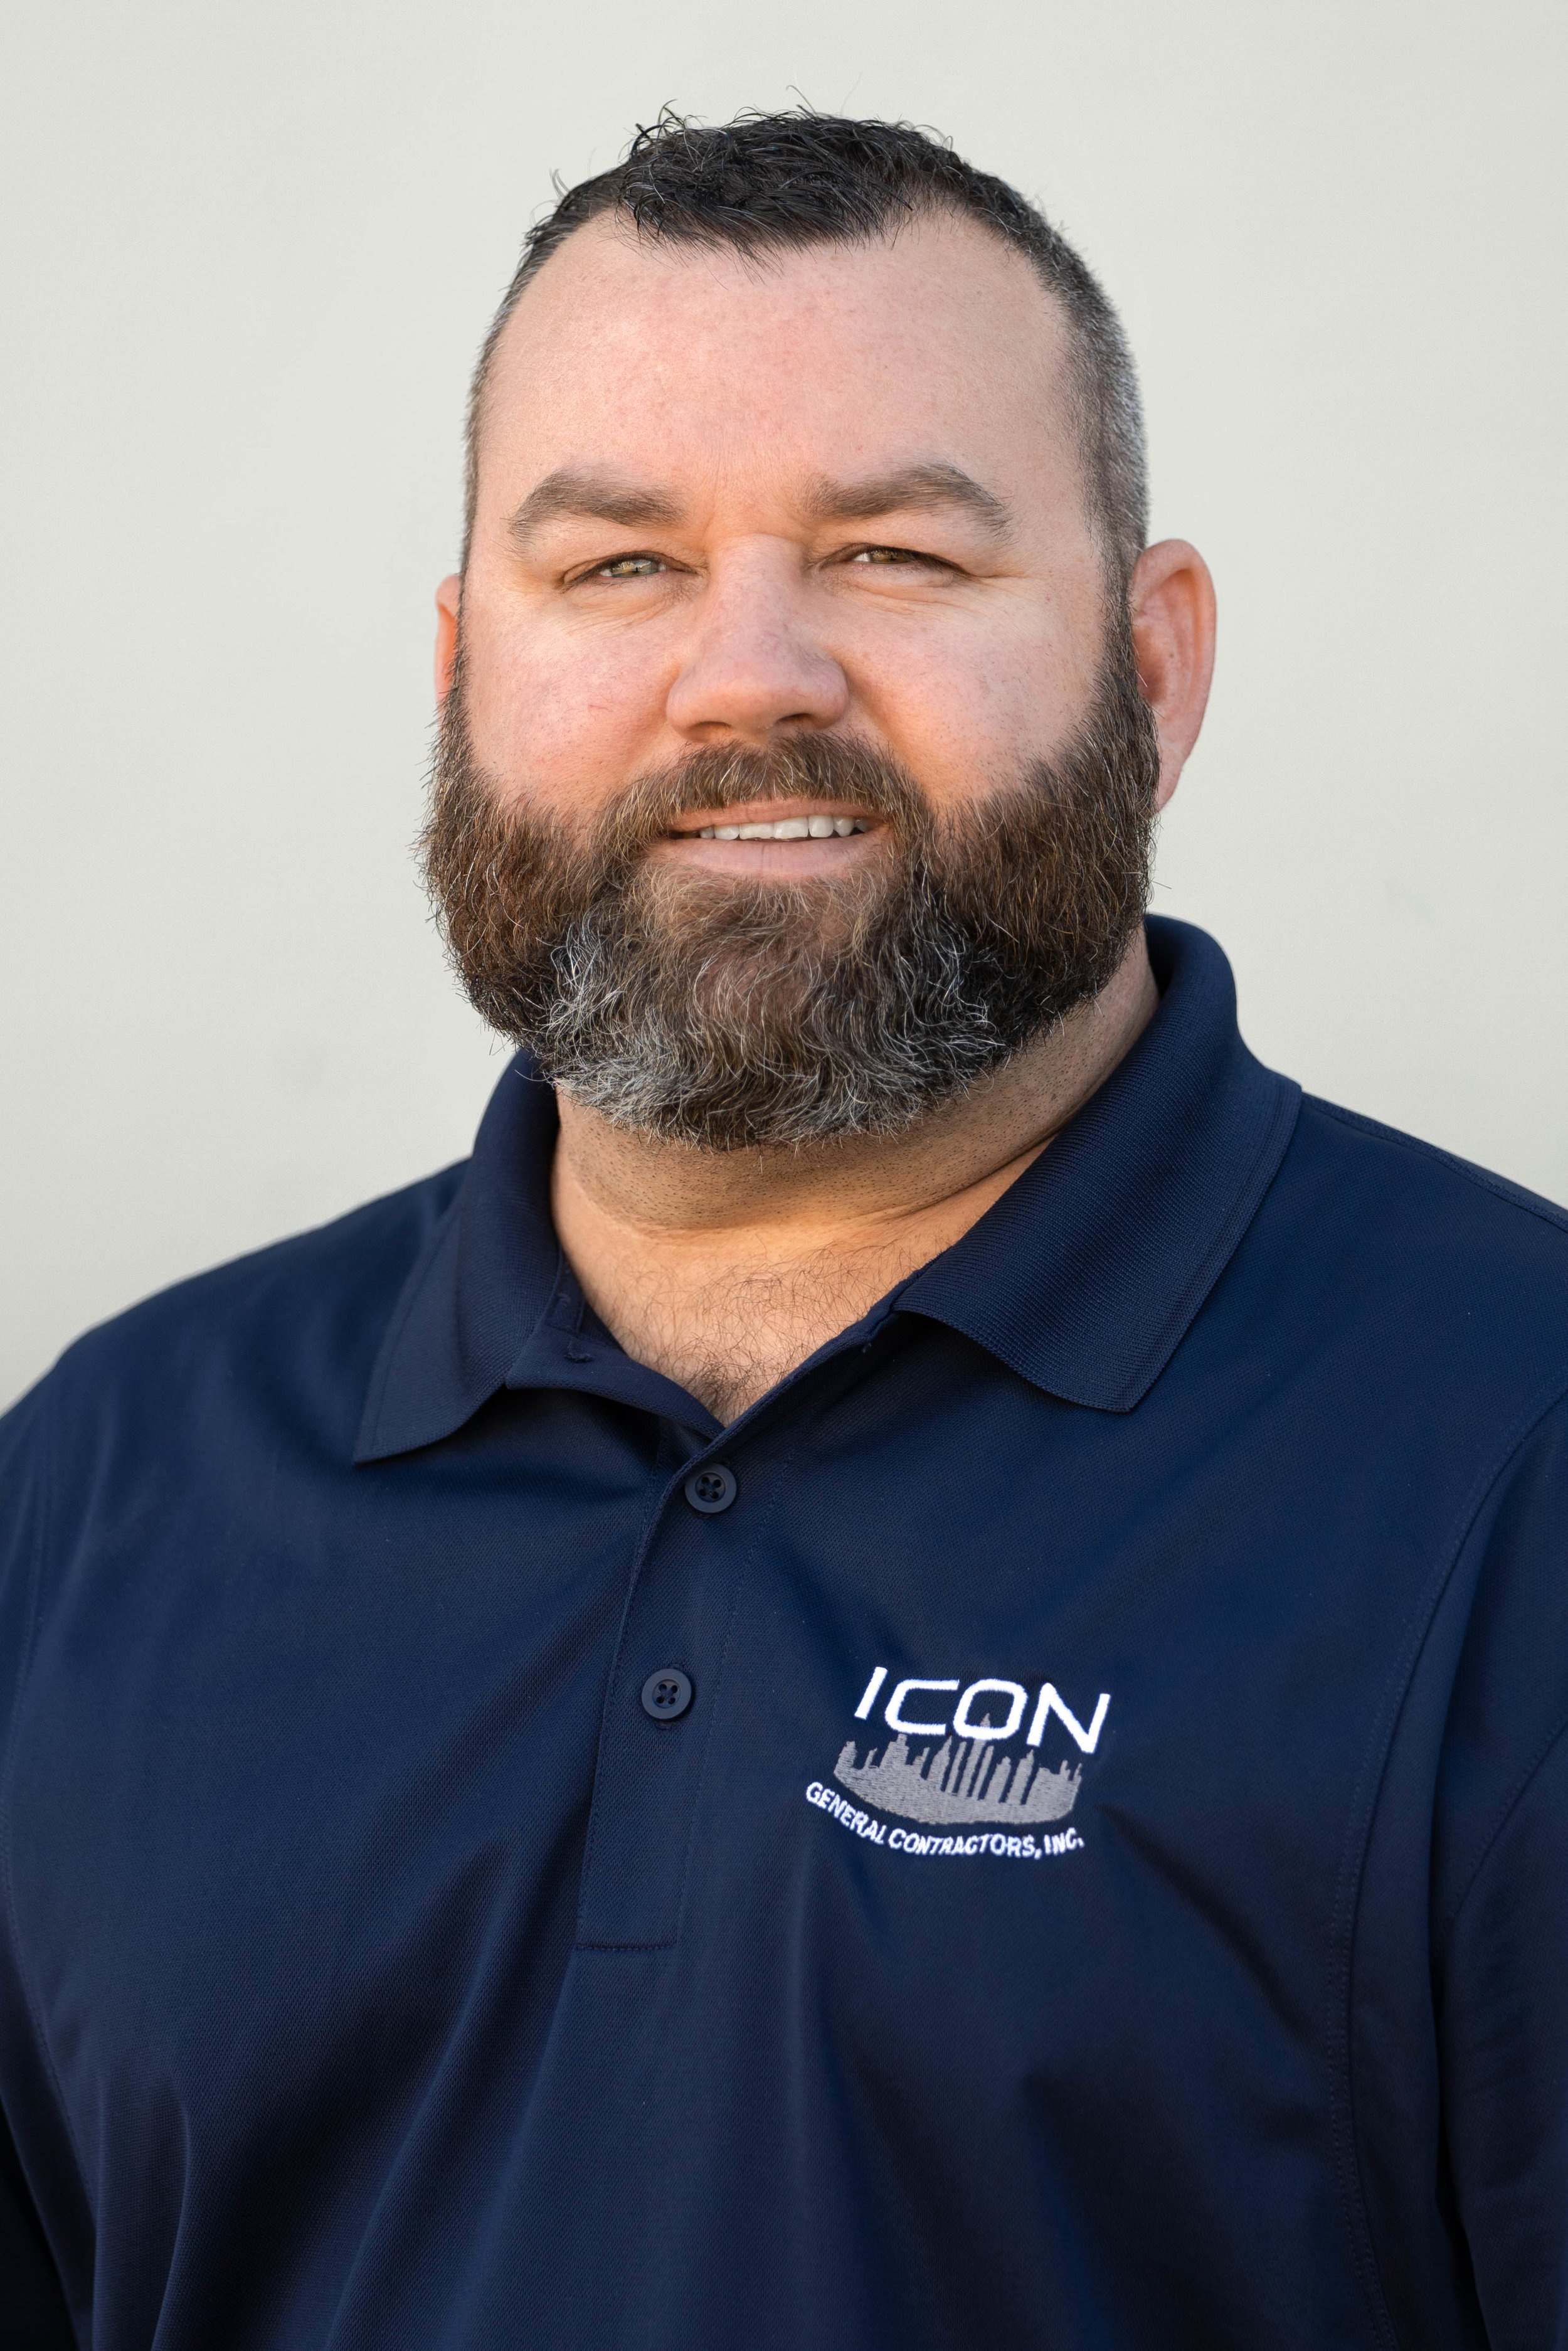 Dustin Keen - Sr. Project Manager916-245-4242 – Direct916-343-6687 - Celldustin@icongc.com